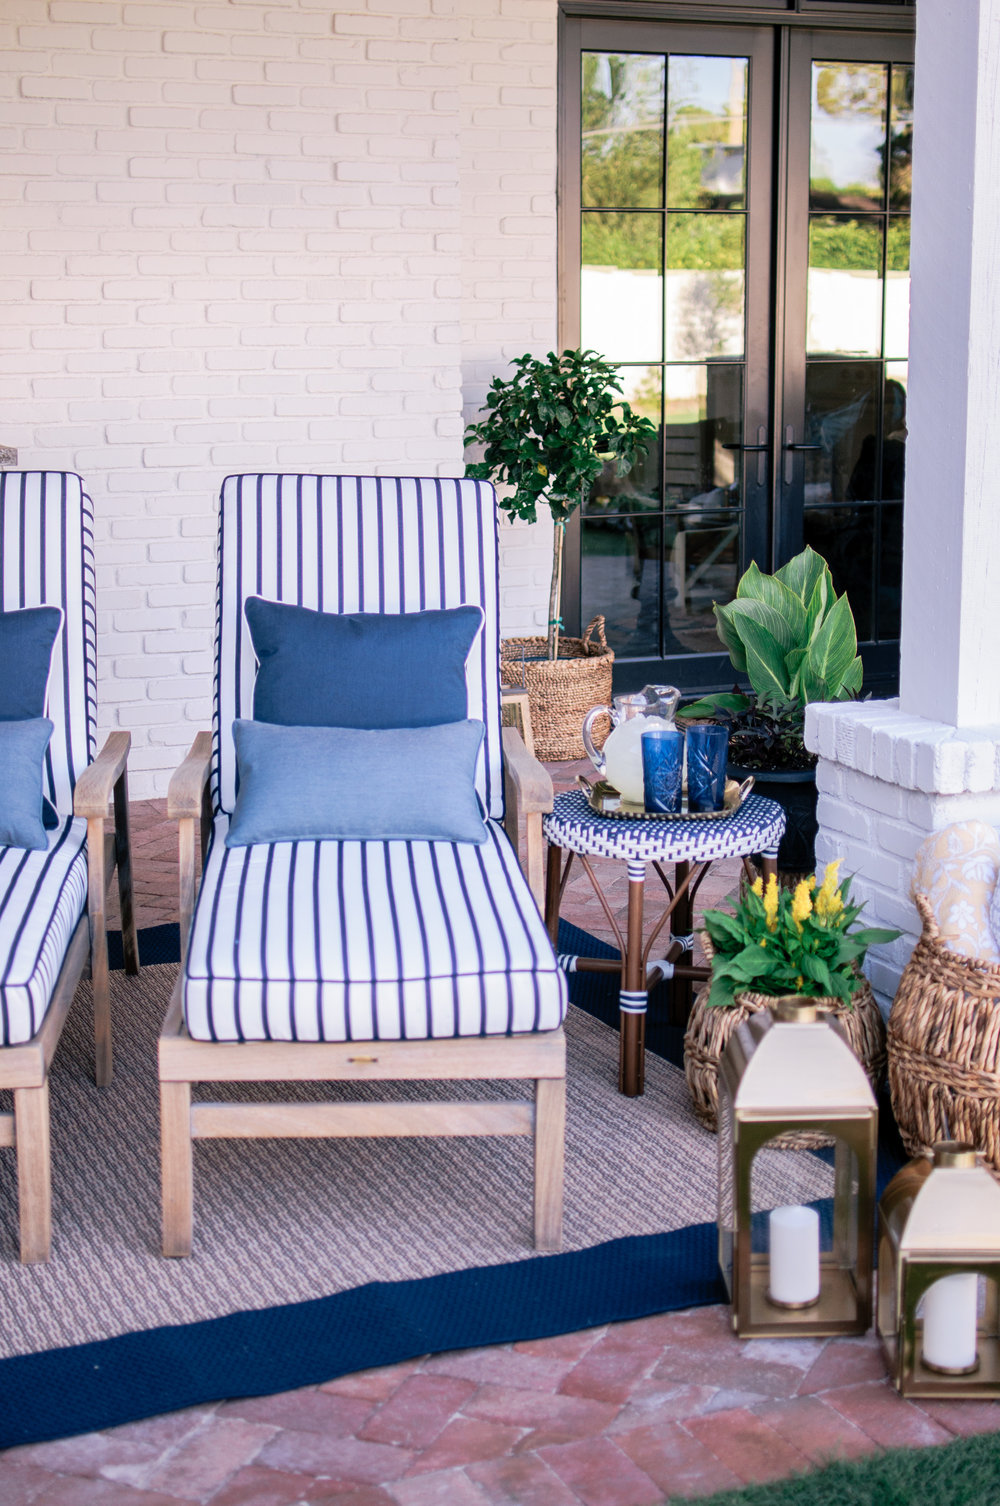 Small Backyard Patio Makeover on a Budget